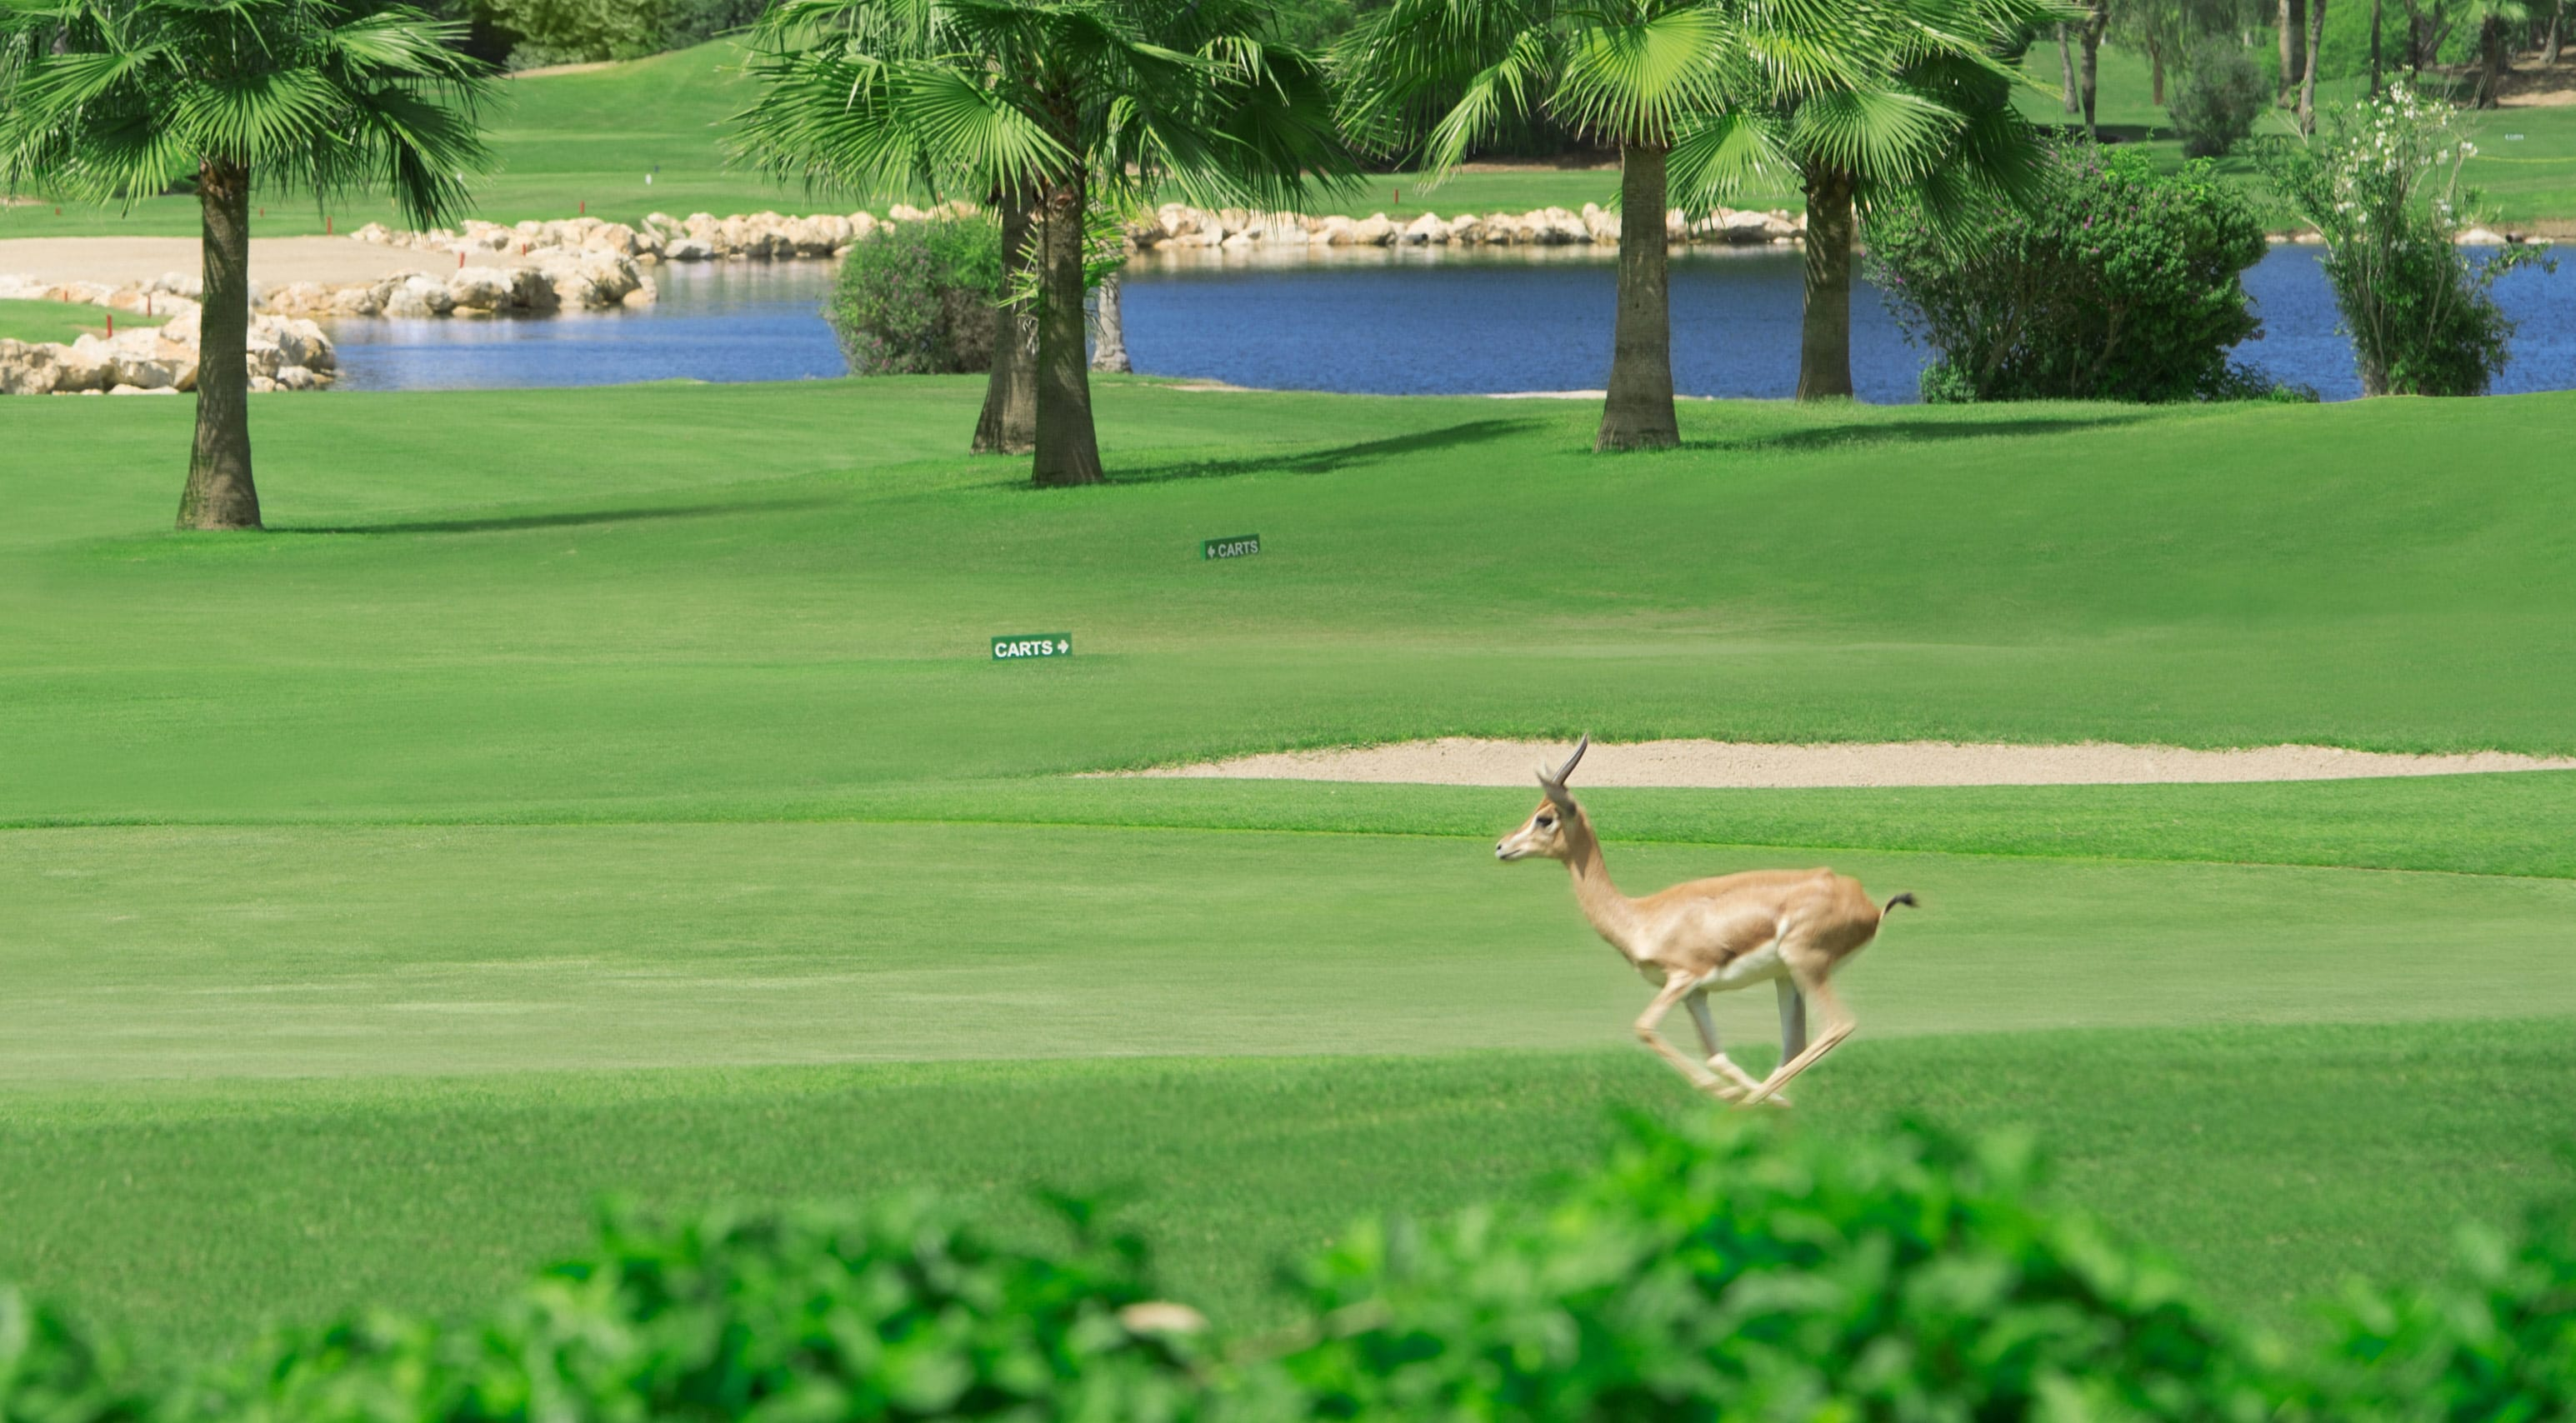 Keep your eyes open for friends on the course!